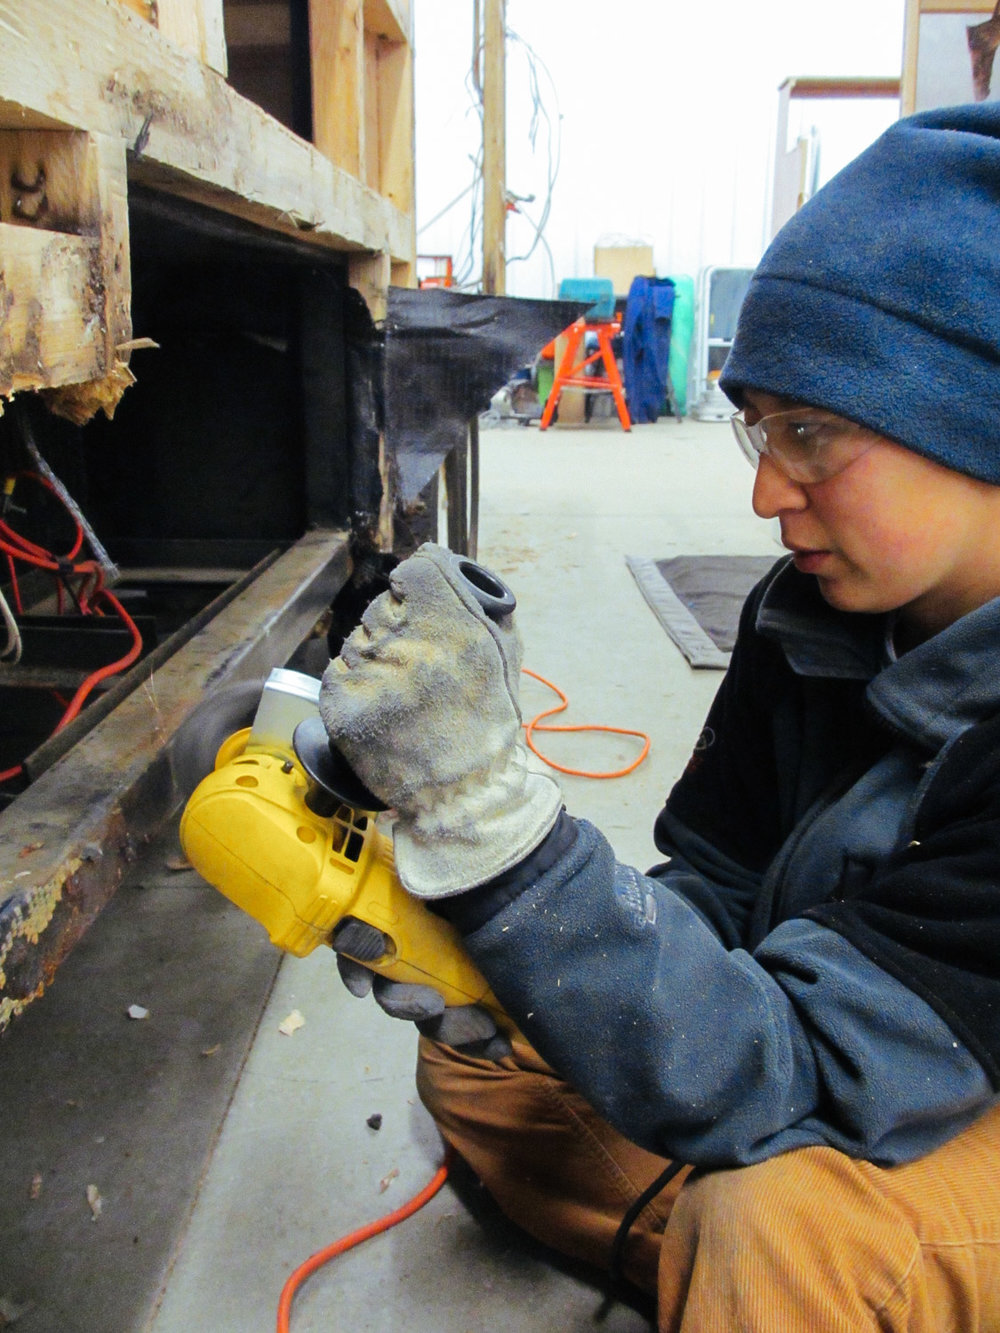 We took the opportunity to clean the rust off the fifth-wheel frame.